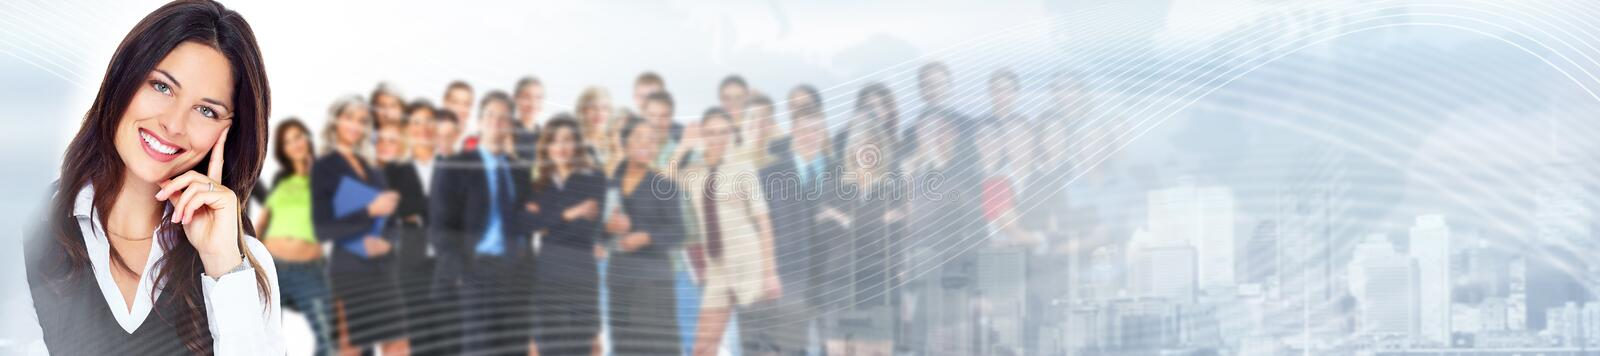 Business background. stock photos